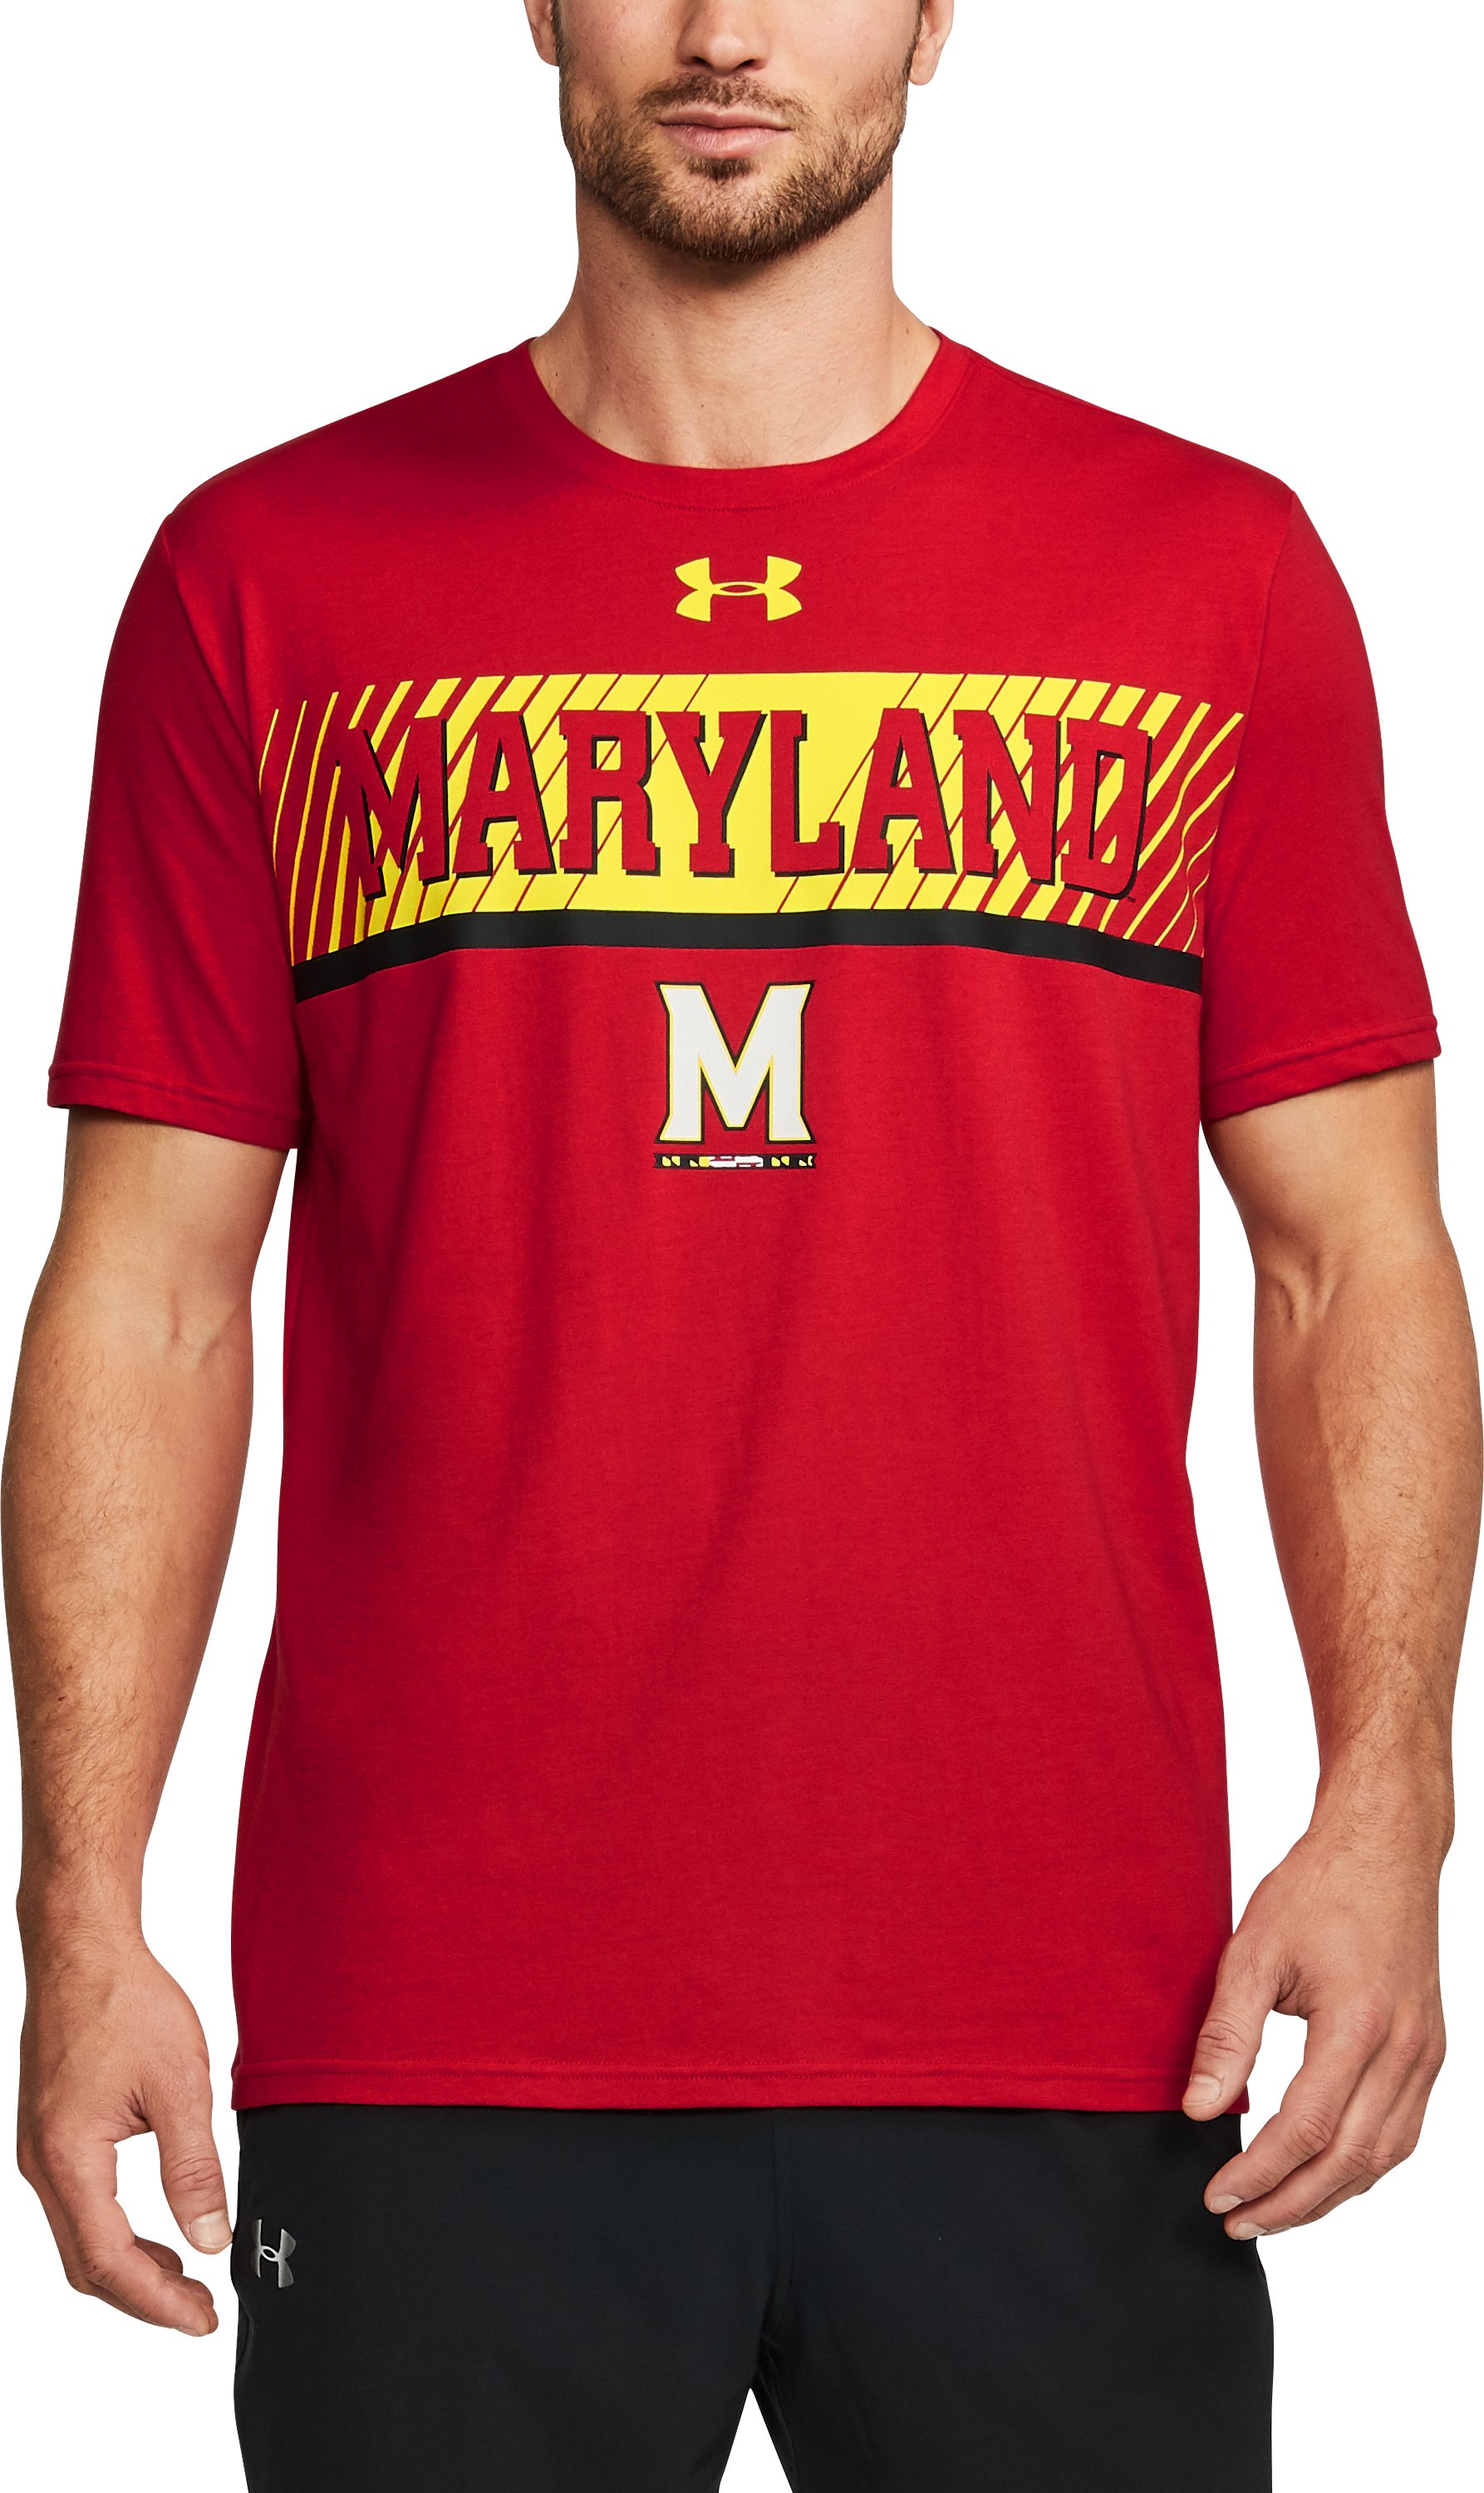 mens cotton t-shirt Men's Maryland Charged Cotton® T-Shirt Very stylish shirt!...My son loves to wear this shirt!...Great Product!